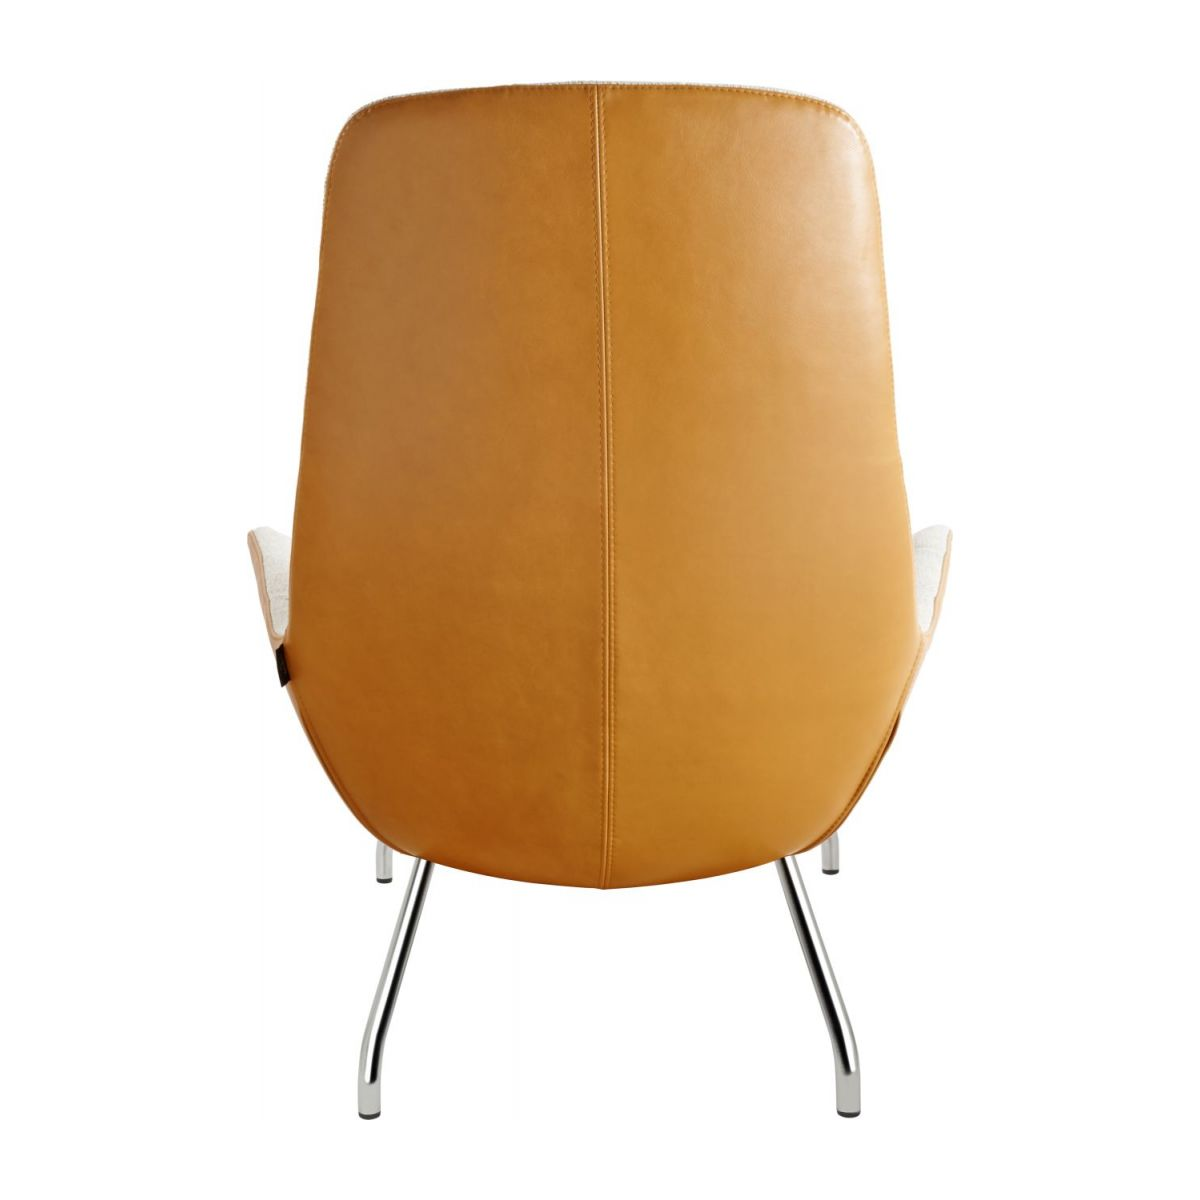 Armchair in Lecce fabric, nature and brown vintage leather with chromed metal legs n°3